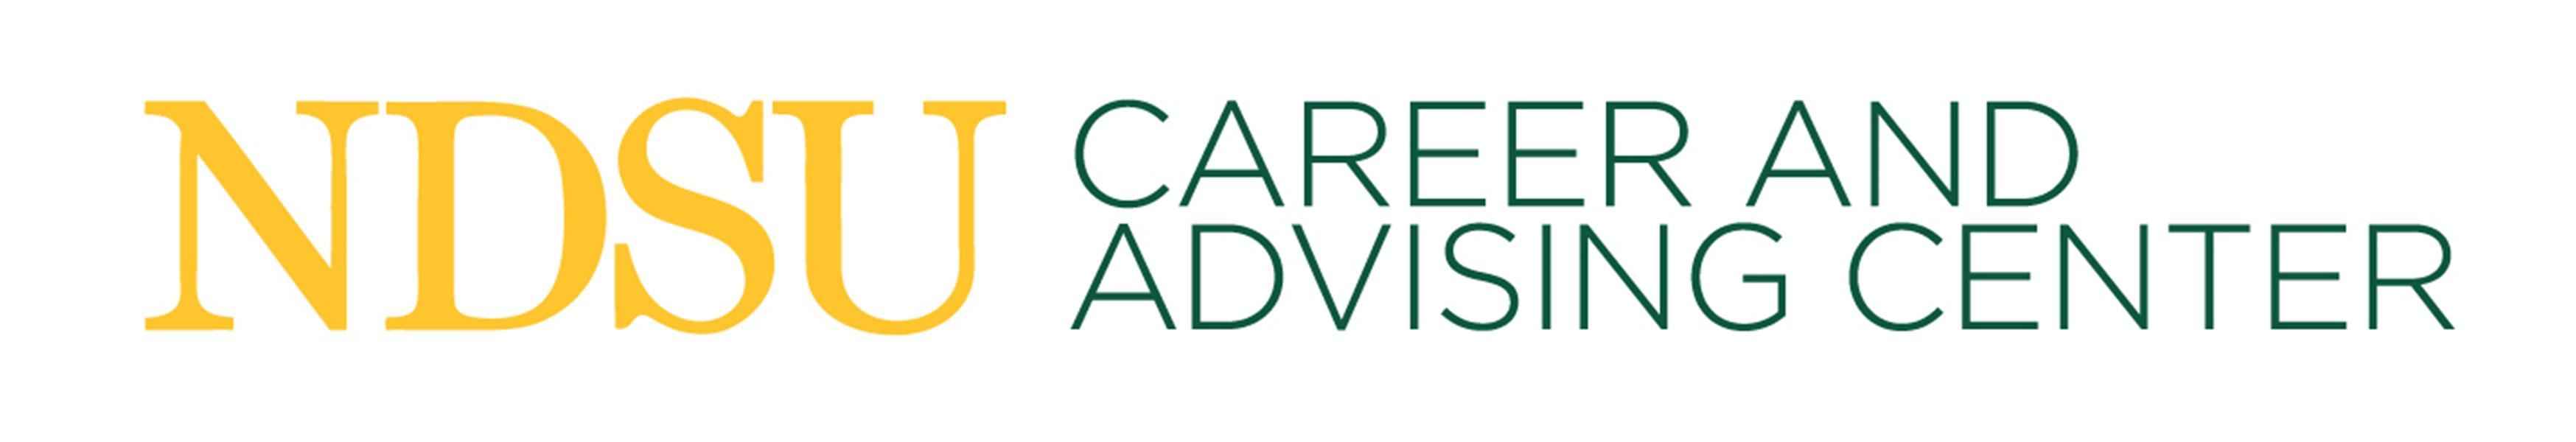 NDSU Career and Advising Center